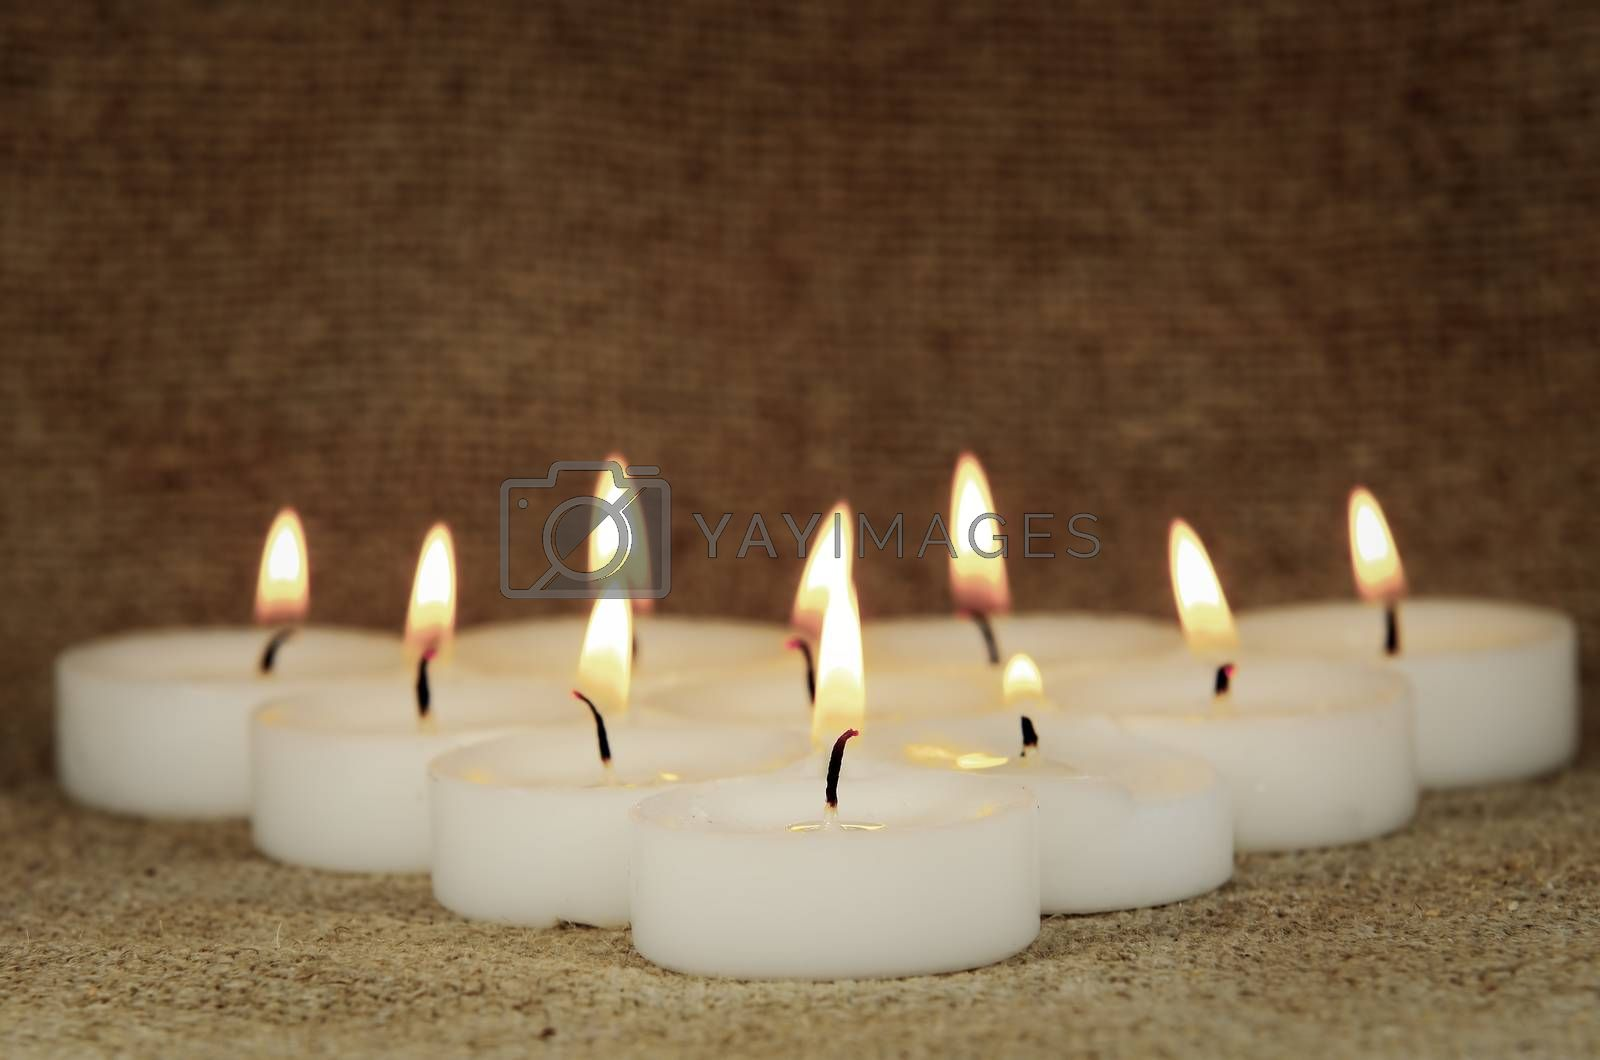 a group of burning candles